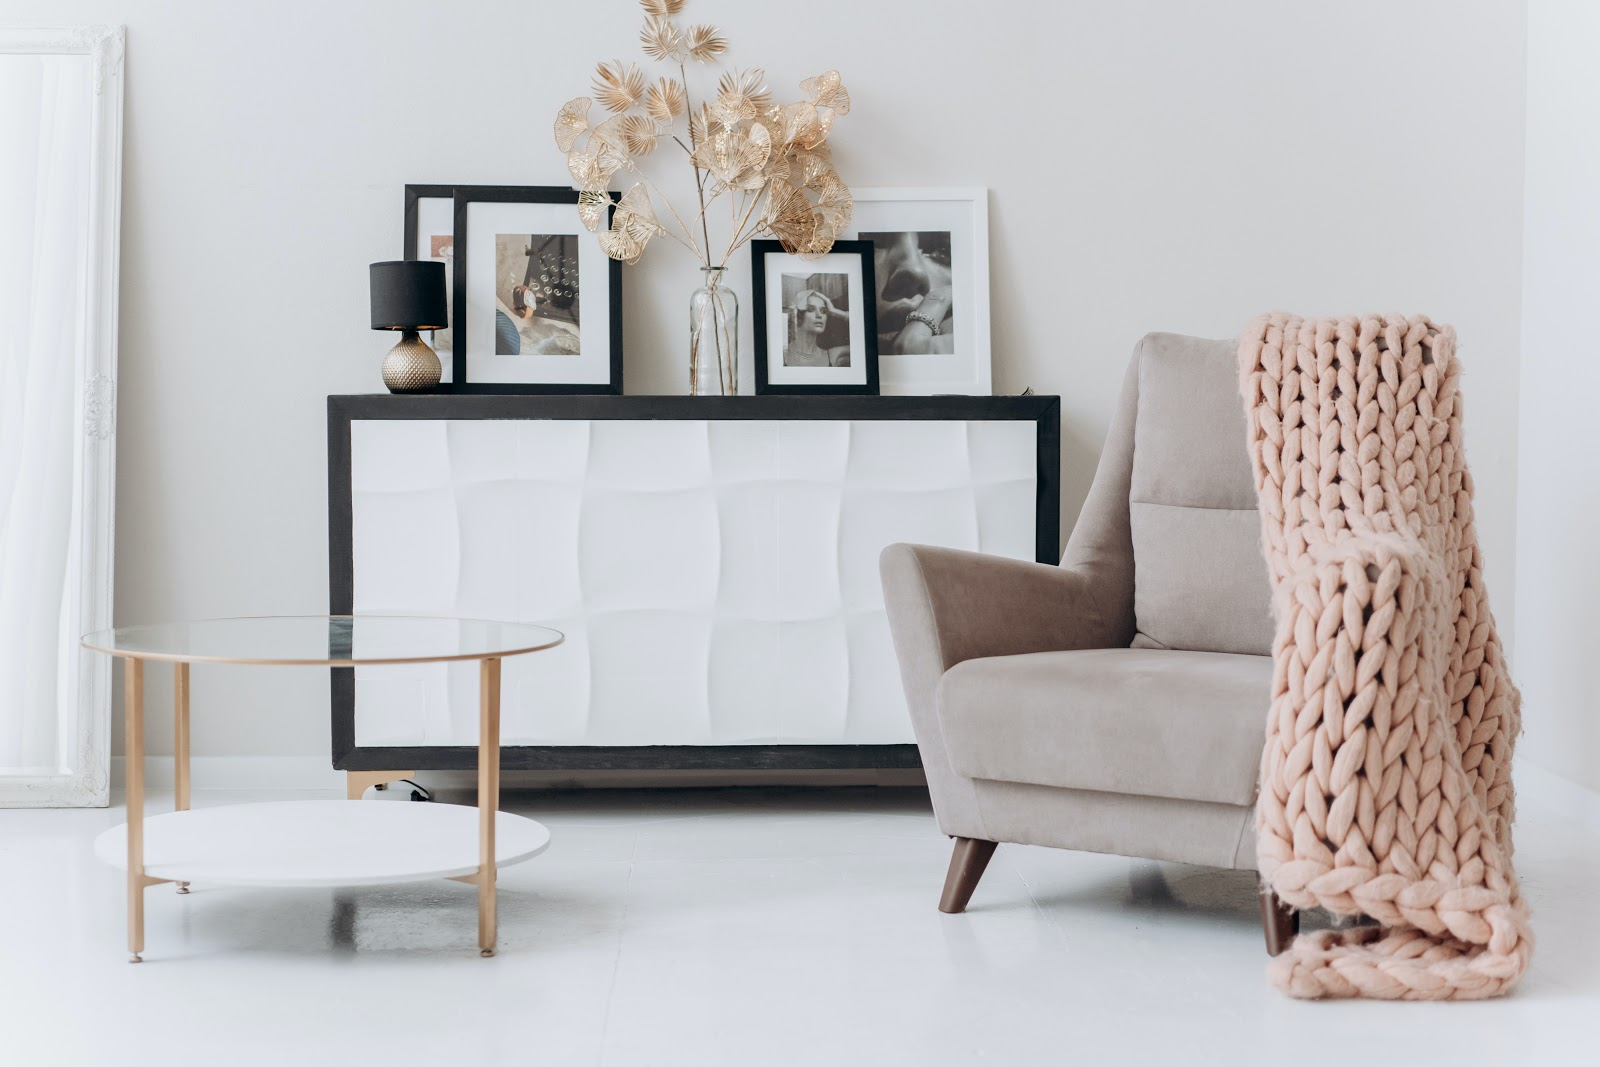 minimalist interior design with table and picture frames and a couch with pink knitted cloth of a condo unit space